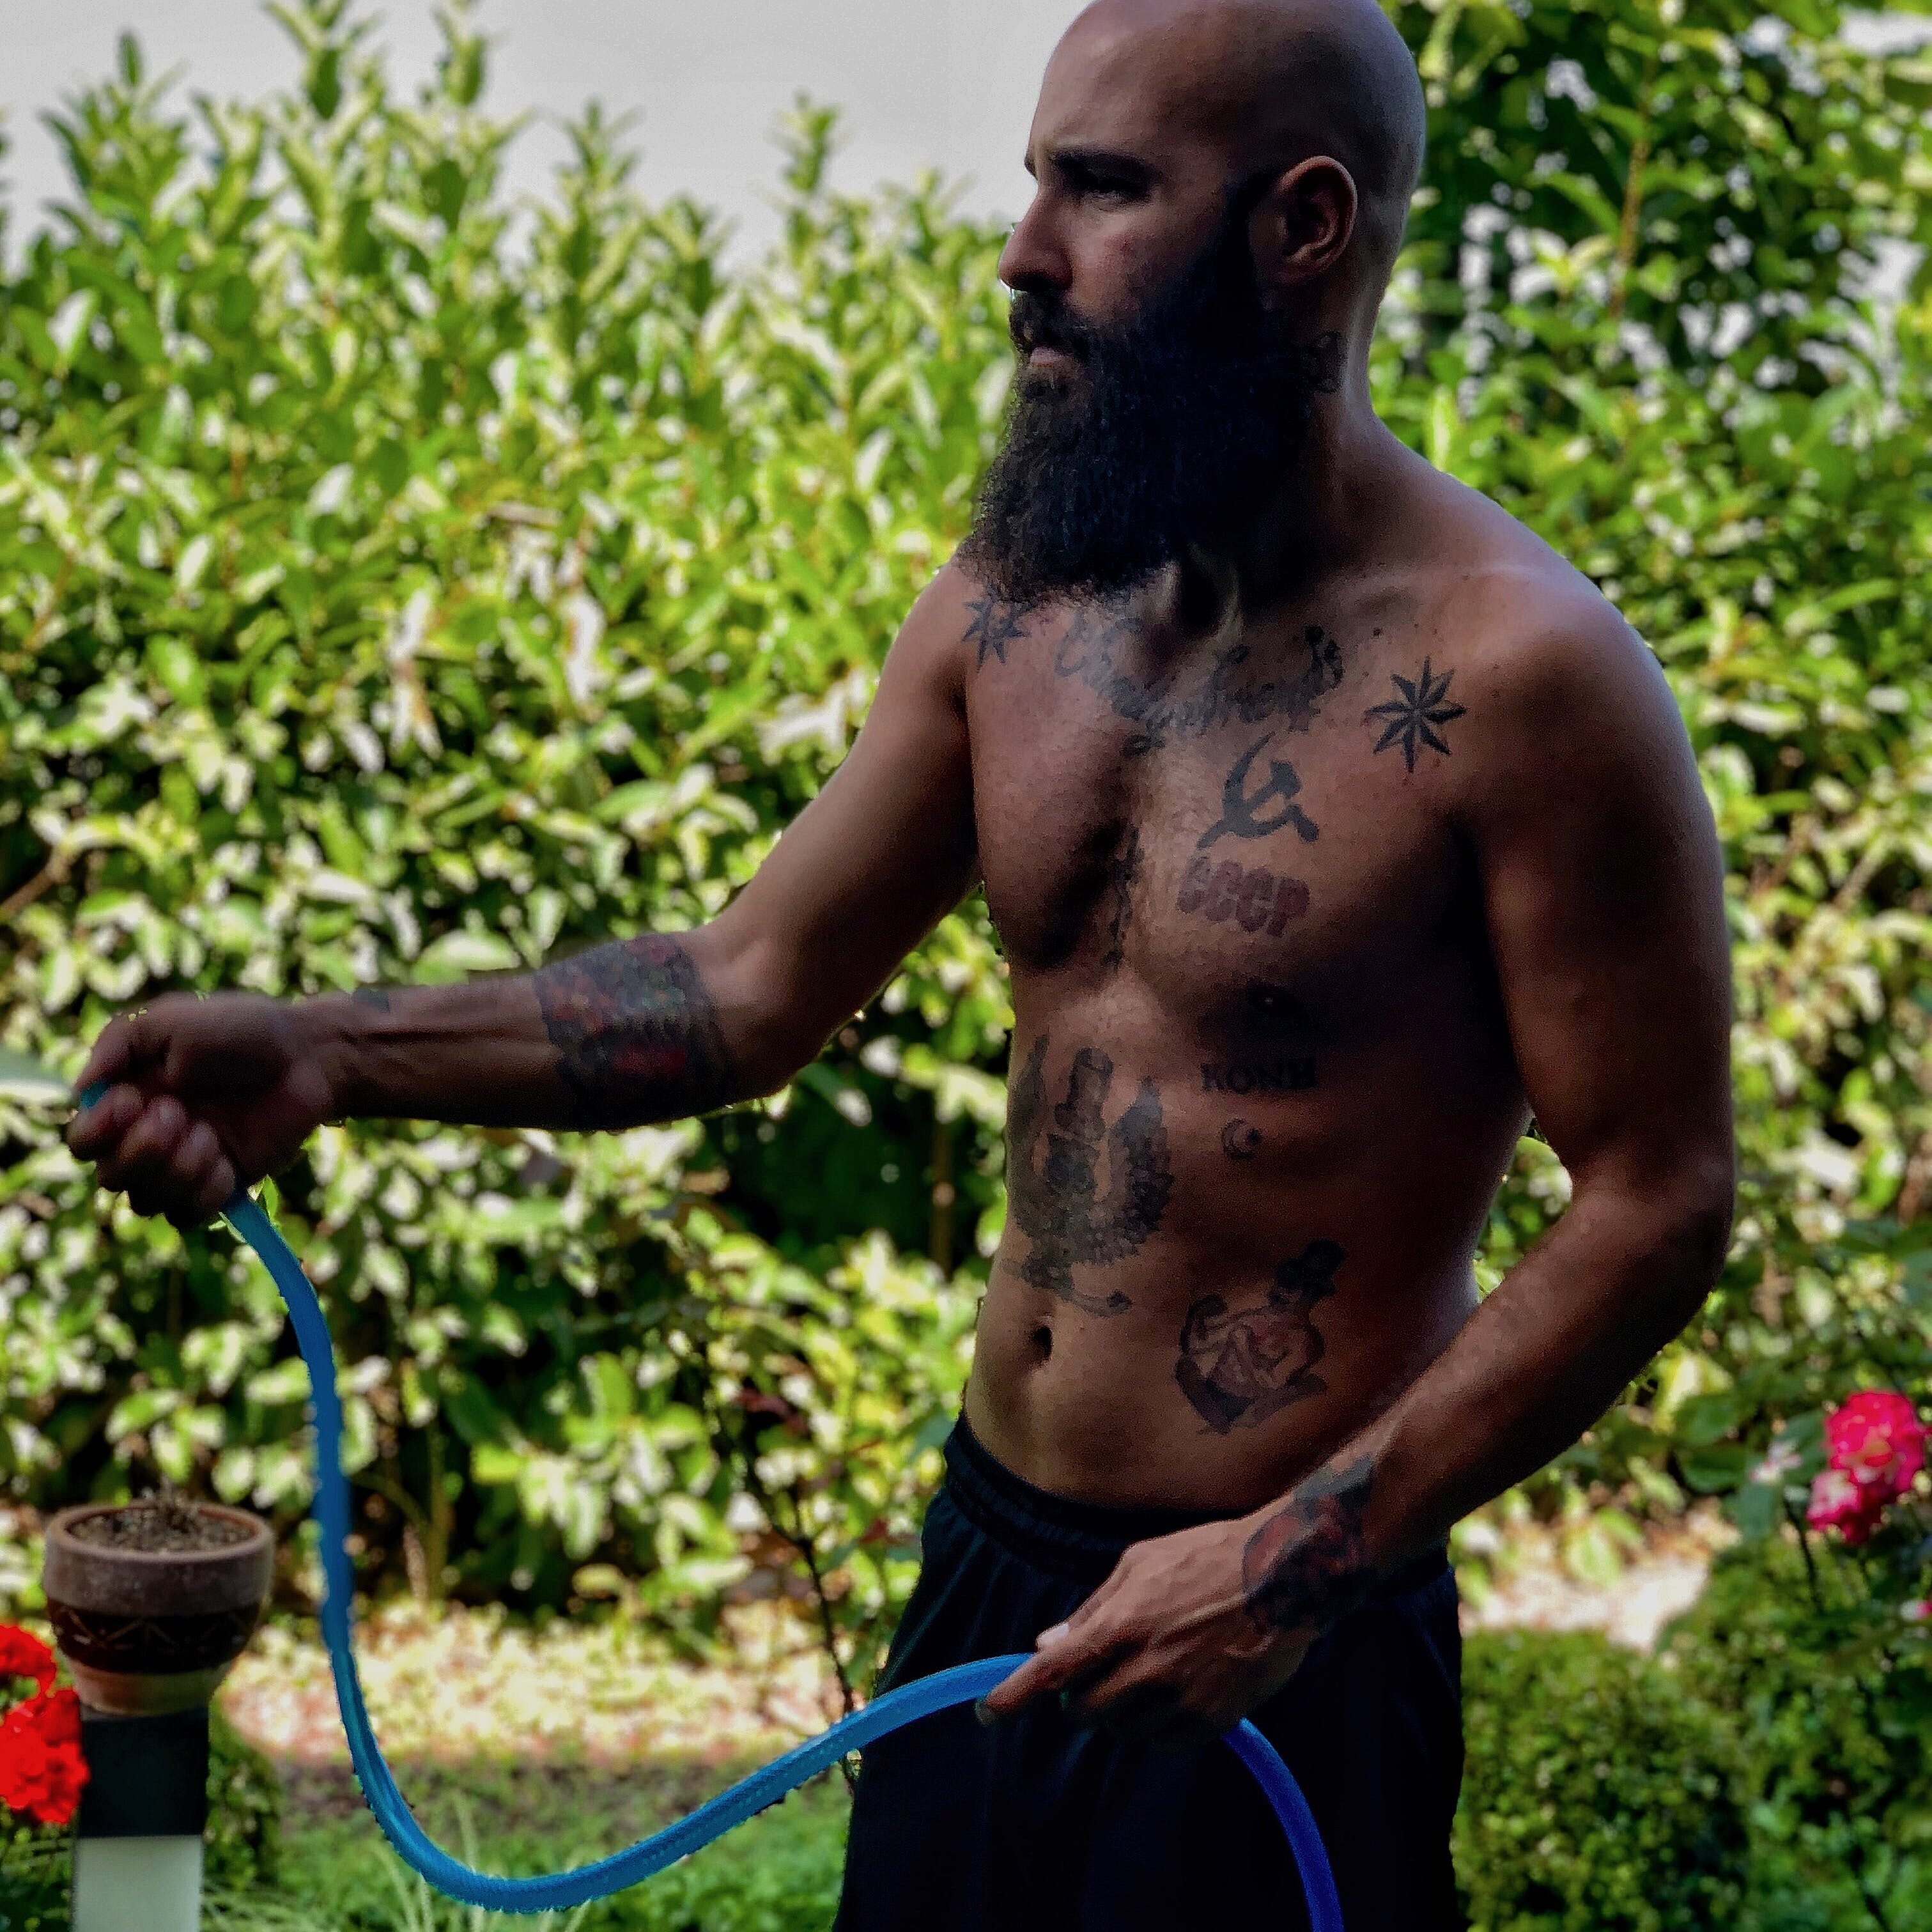 Shallow Focus Photography Of Topless Man Holding Water Hose